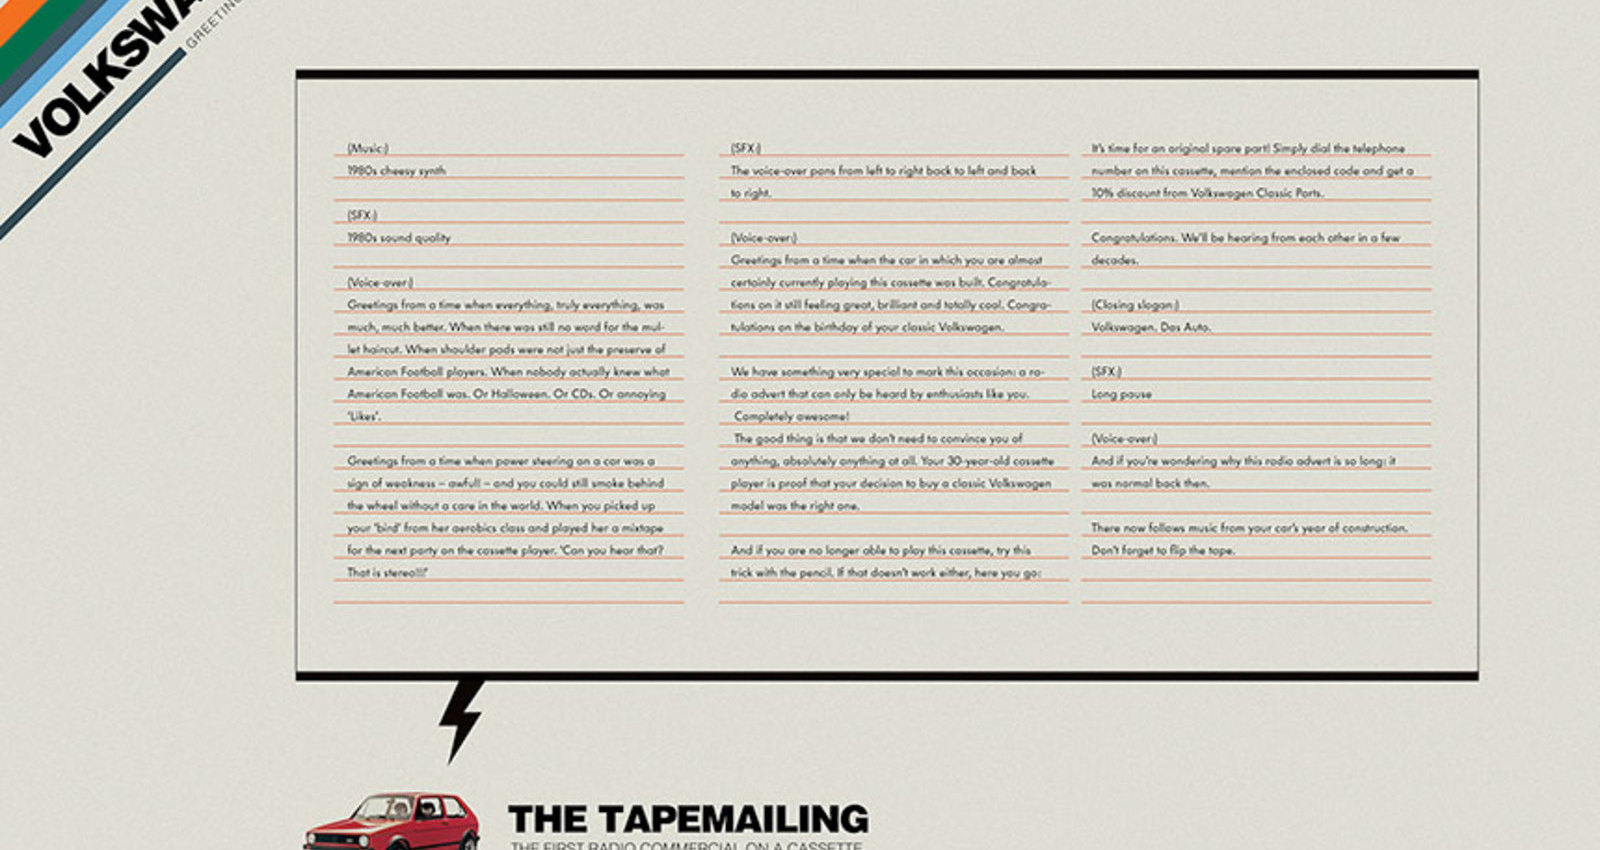 Tapemailing